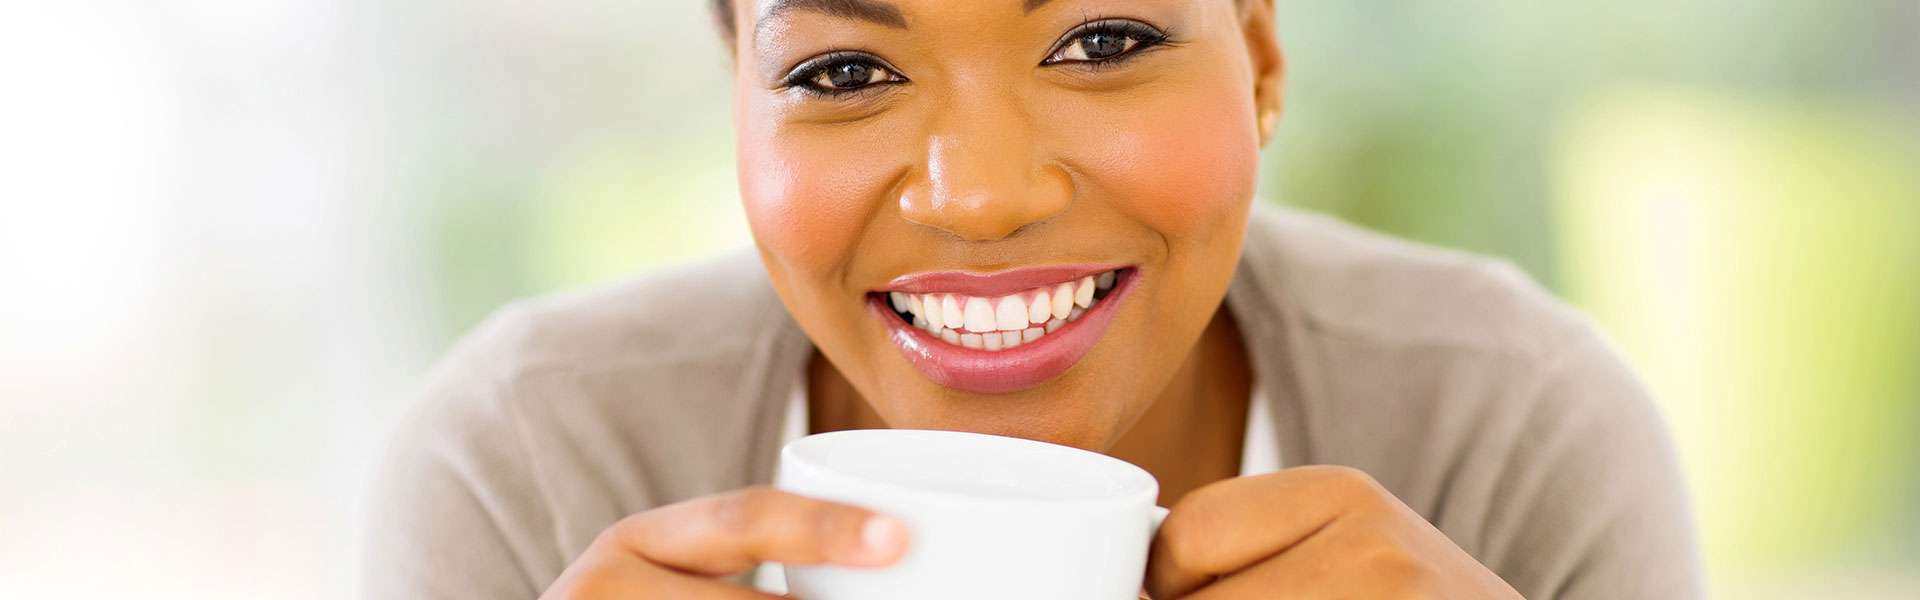 Woman smiling while enjoying a cup of coffee